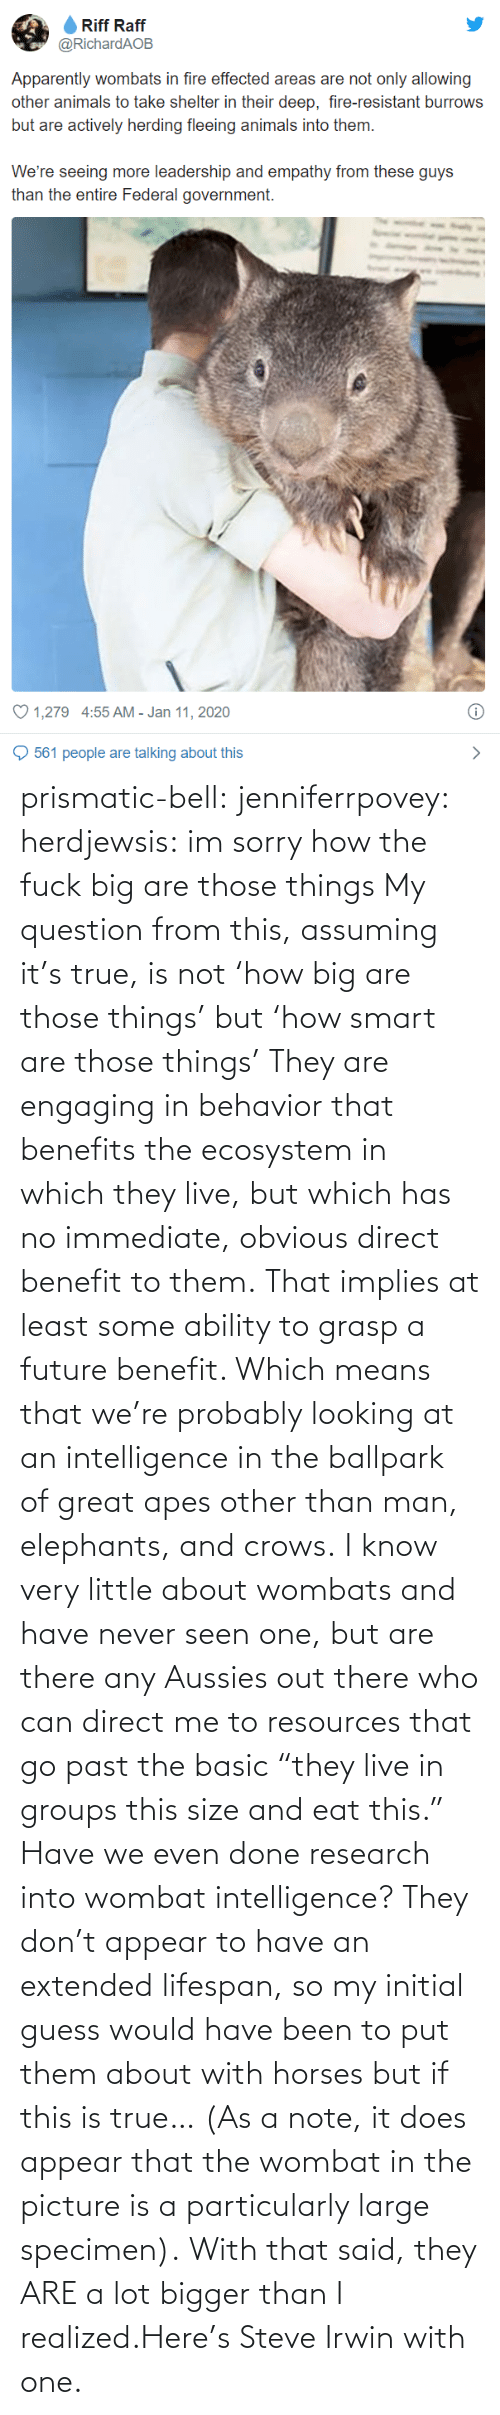 "said: prismatic-bell:  jenniferrpovey: herdjewsis: im sorry how the fuck big are those things My question from this, assuming it's true, is not 'how big are those things' but 'how smart are those things' They are engaging in behavior that benefits the ecosystem in which they live, but which has no immediate, obvious direct benefit to them. That implies at least some ability to grasp a future benefit. Which means that we're probably looking at an intelligence in the ballpark of great apes other than man, elephants, and crows. I know very little about wombats and have never seen one, but are there any Aussies out there who can direct me to resources that go past the basic ""they live in groups this size and eat this."" Have we even done research into wombat intelligence? They don't appear to have an extended lifespan, so my initial guess would have been to put them about with horses but if this is true… (As a note, it does appear that the wombat in the picture is a particularly large specimen).  With that said, they ARE a lot bigger than I realized.Here's Steve Irwin with one."